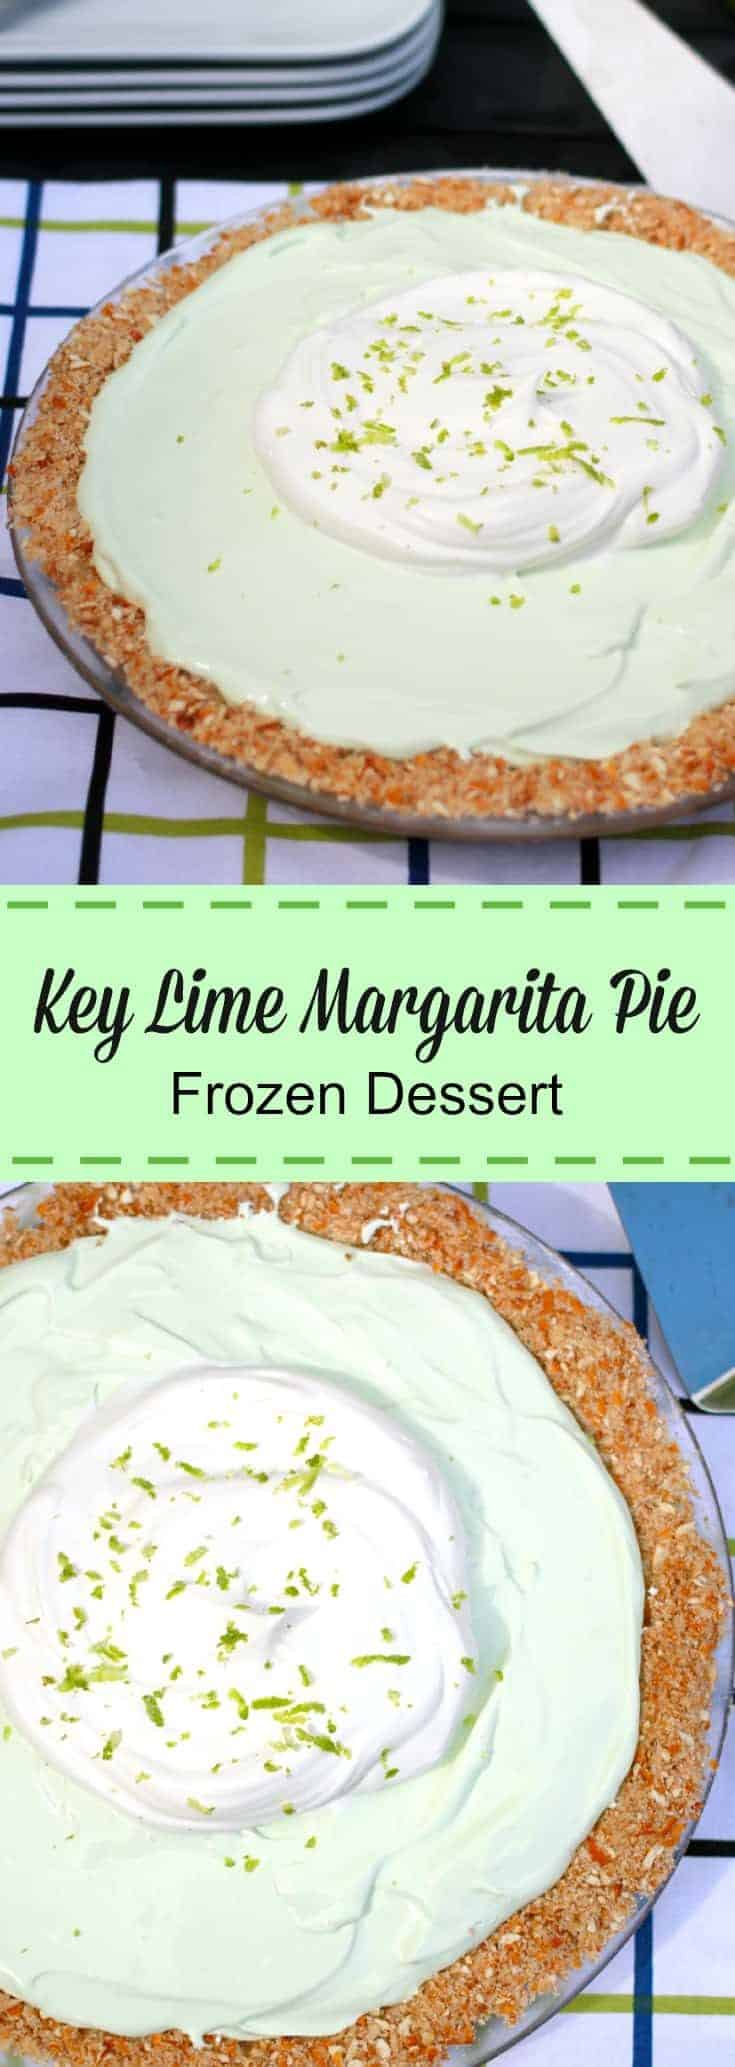 Key Lime Margarita Pie is the ideal easy summer {frozen} dessert. Simple to make and tastes just like lime ice cream, without the excess calories. #keylimepie #keylime #pierecipe